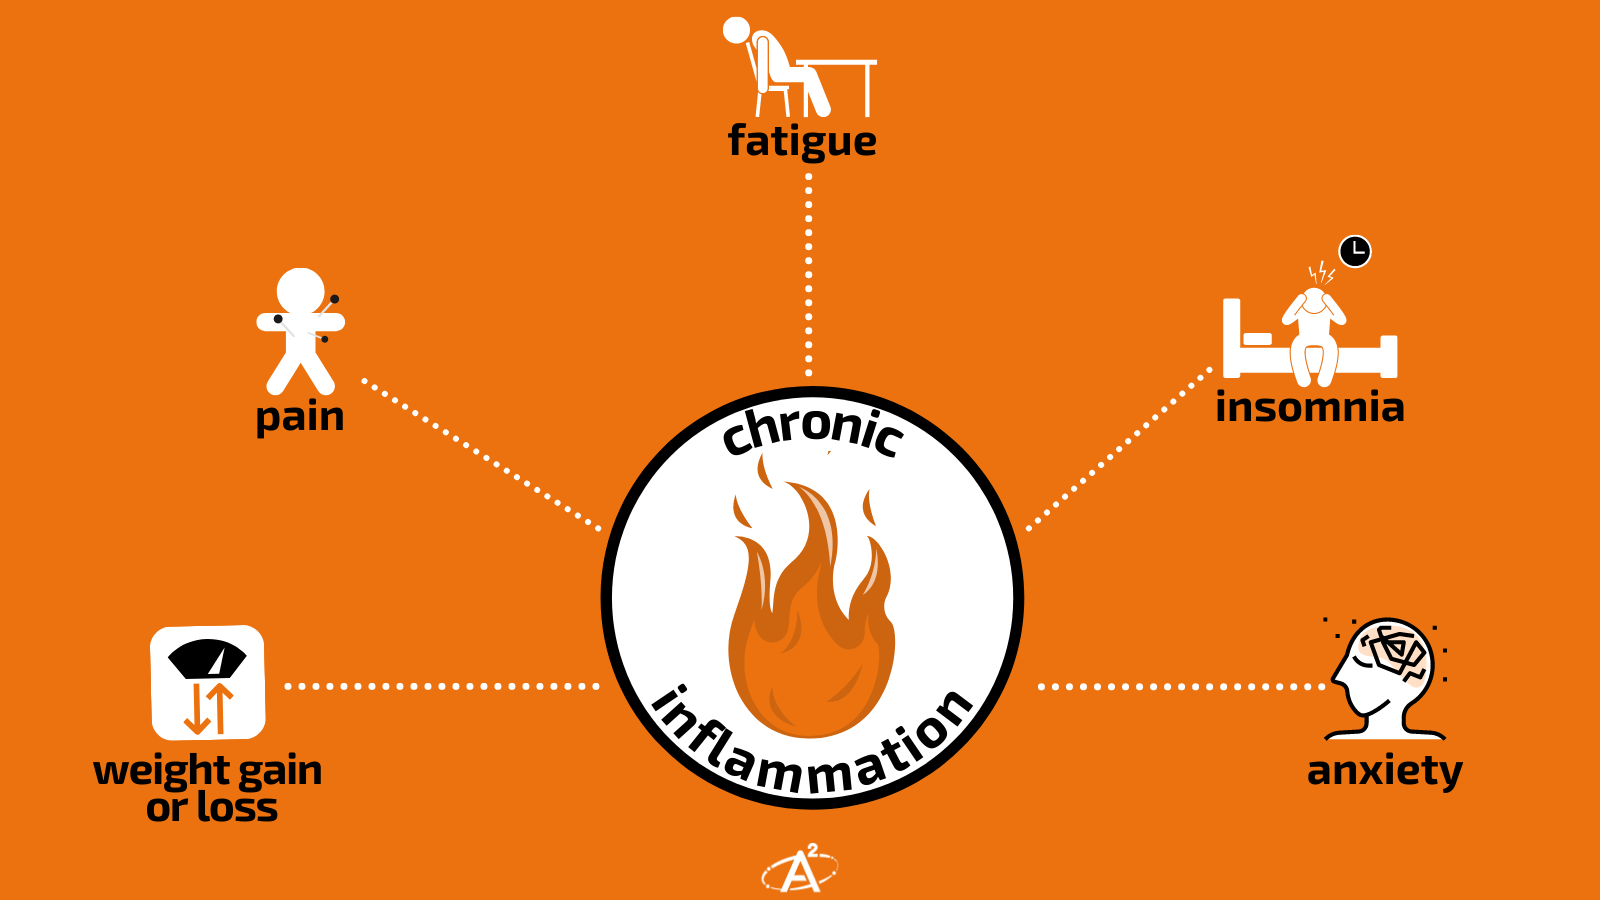 chronic inflammation effects - 5 things